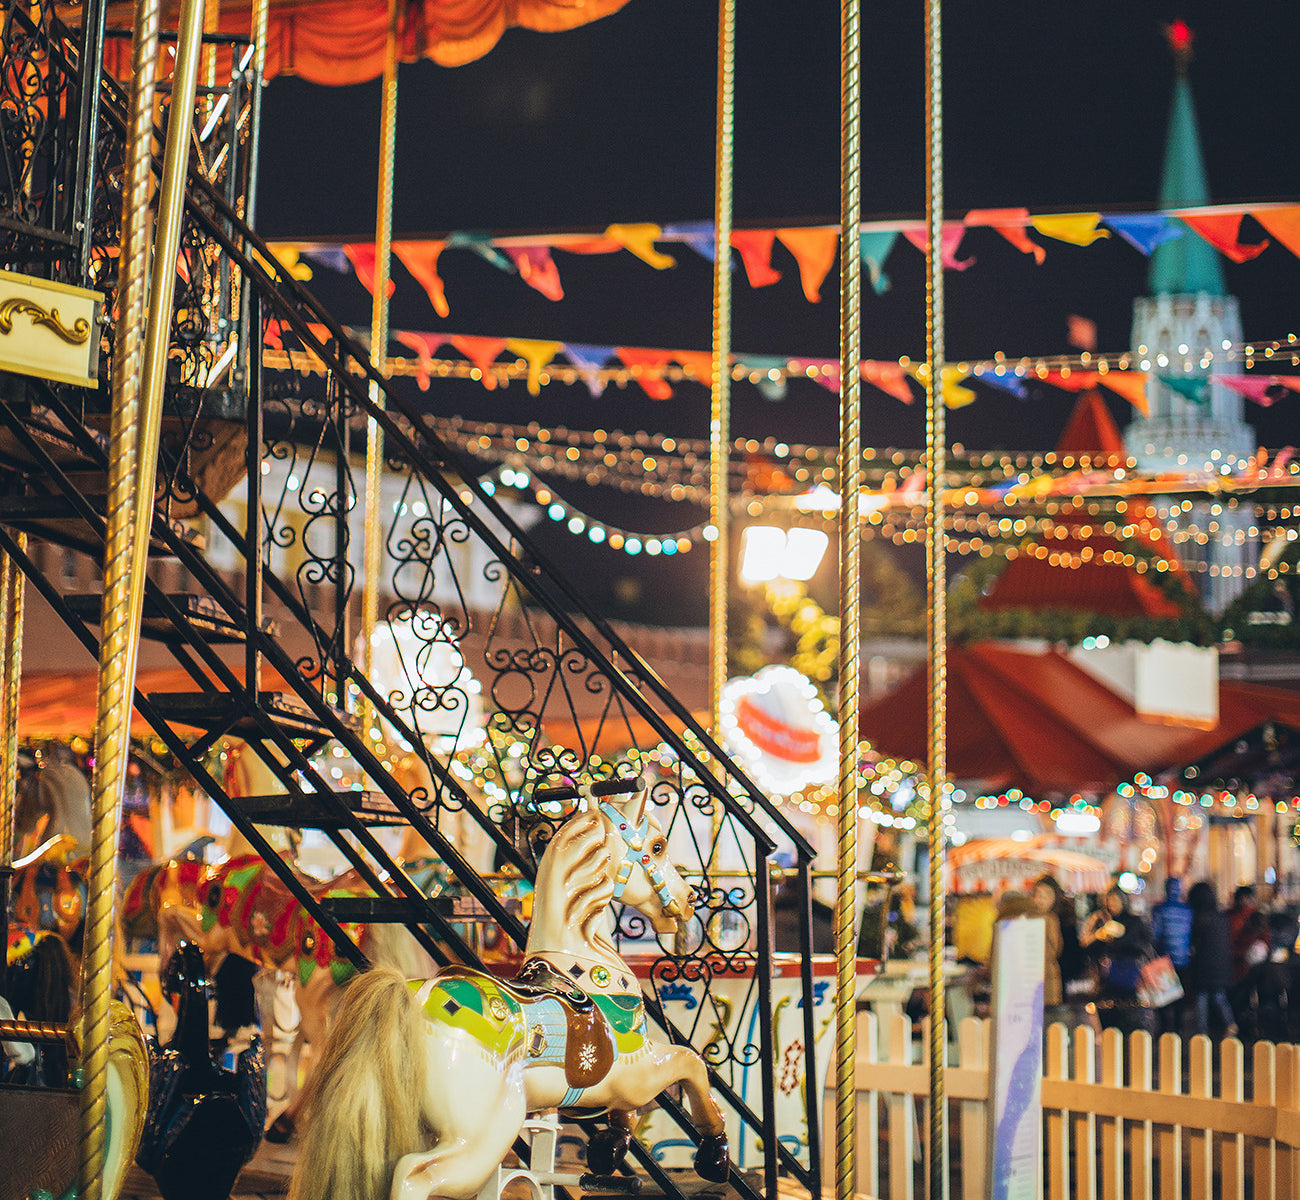 Colourful carousel at night